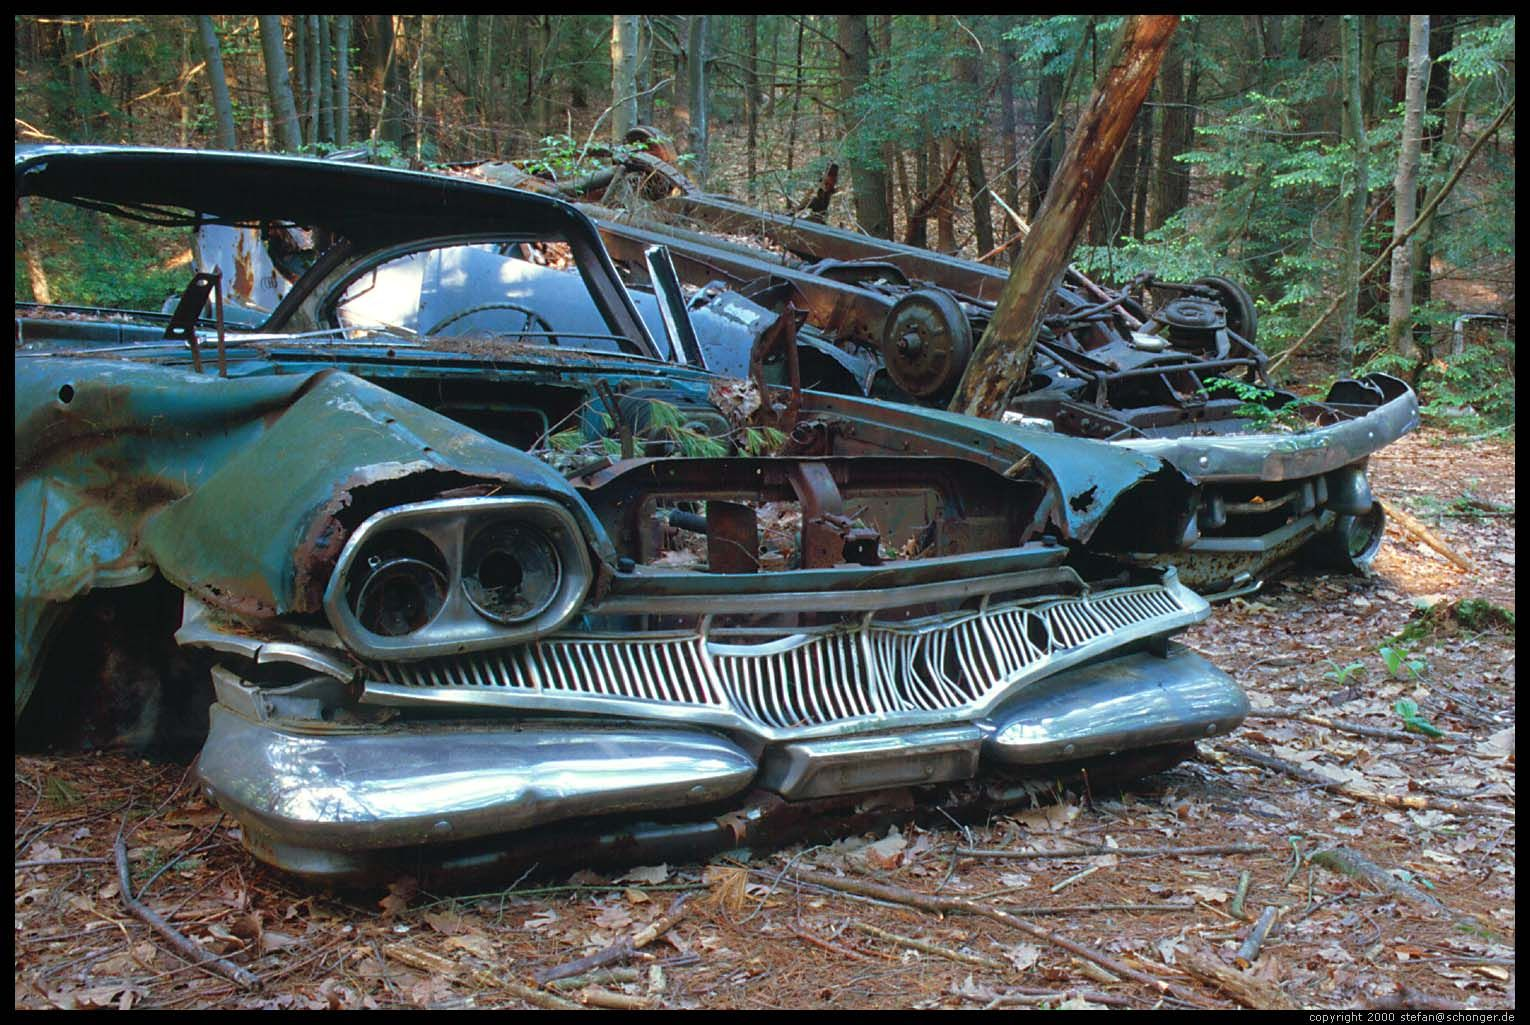 1960 Dodge| Junk Cars in Forest, Amherst, MA, May 2000 | Beauties ...